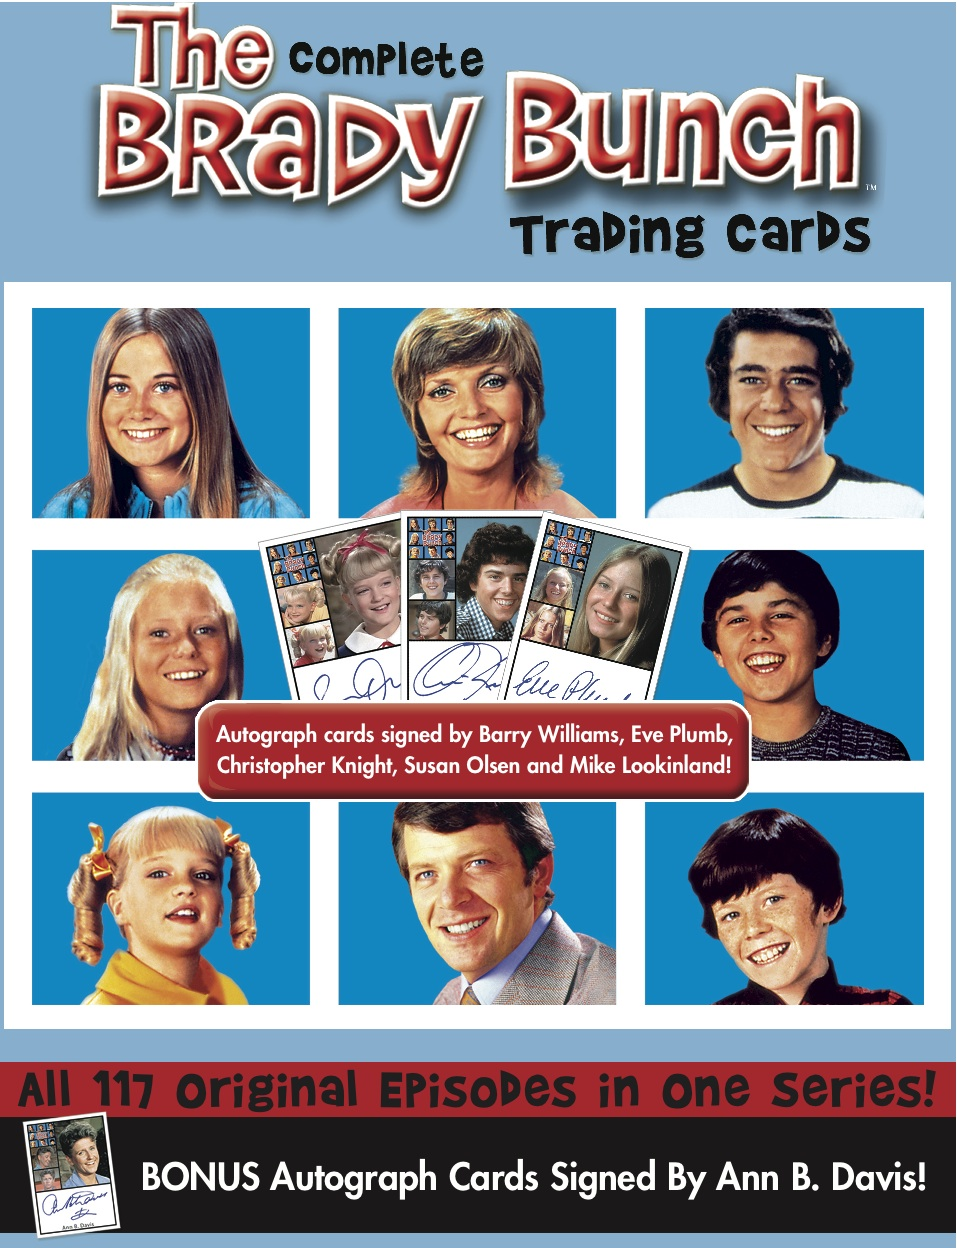 Brady Bunch Christmas Card.Awesome Of The Day Brady Bunch Trading Cards The 10